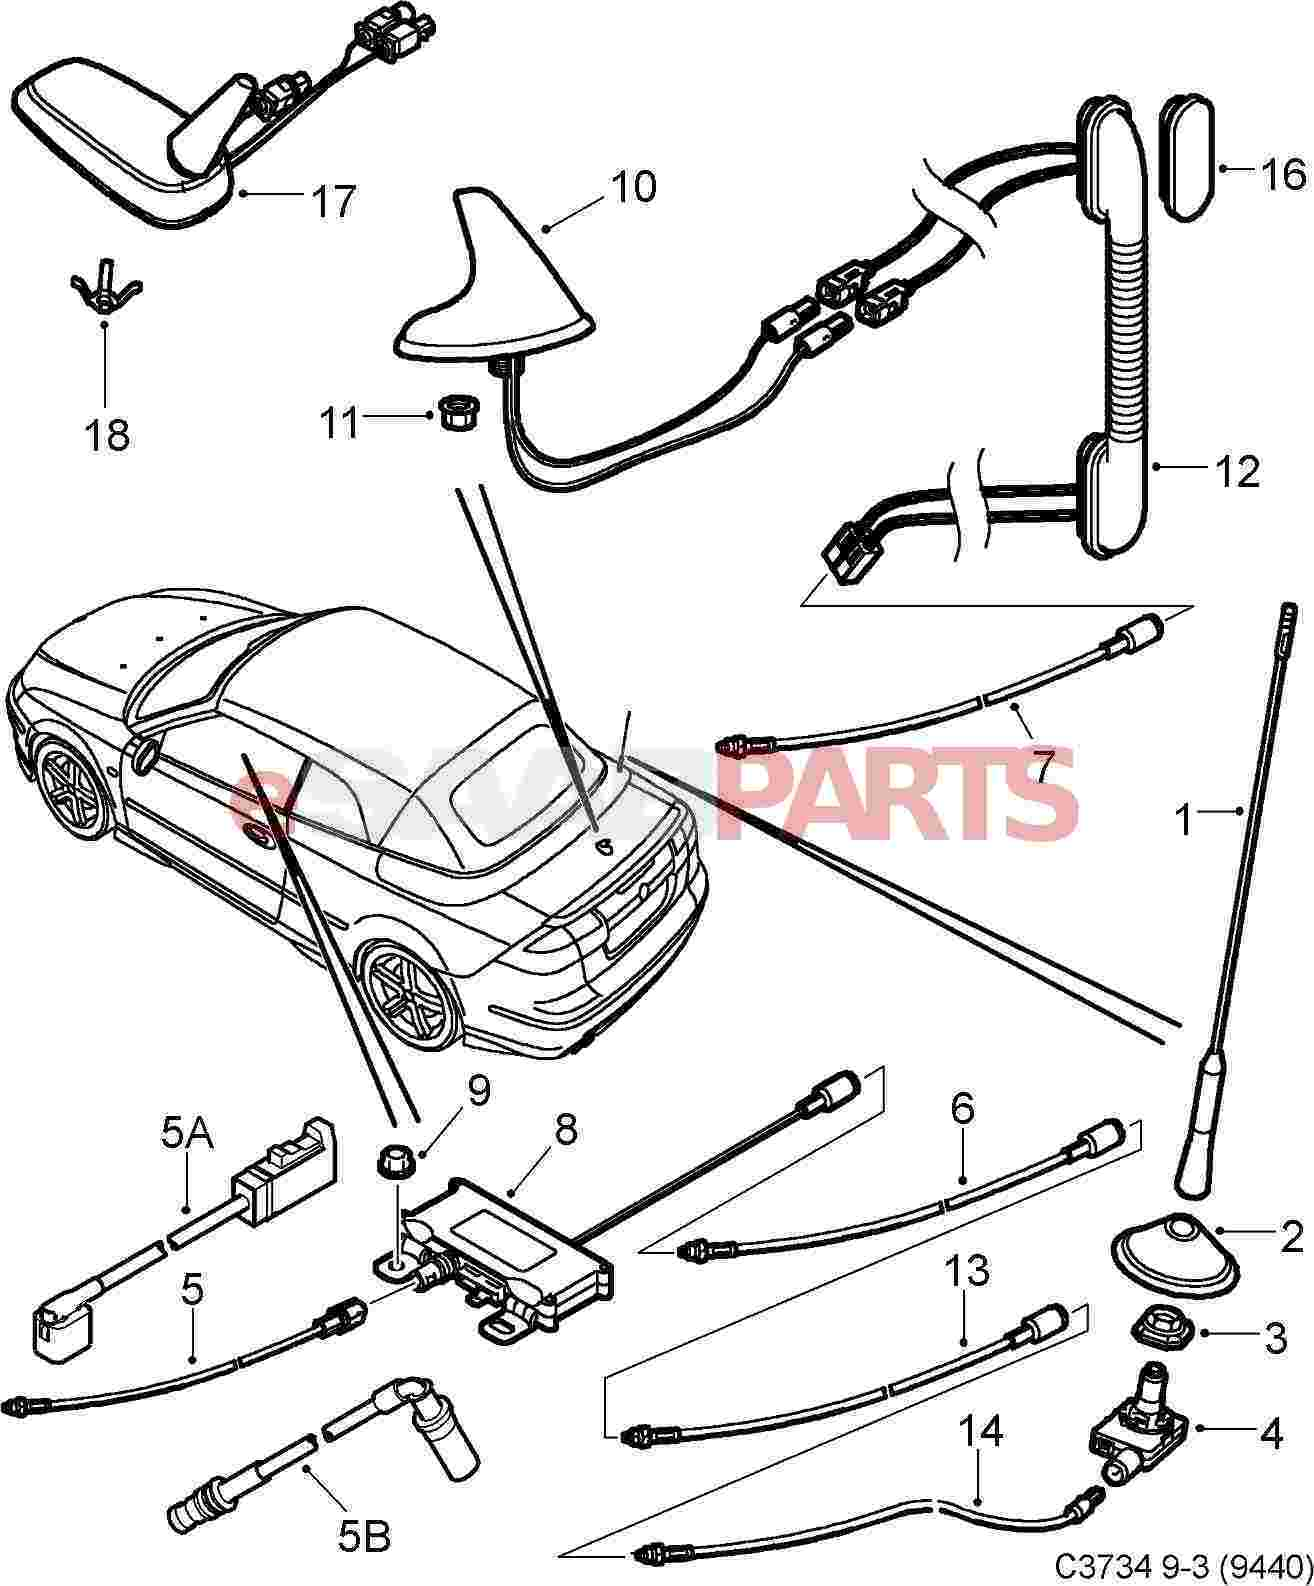 Subaru Svx Fuse Box Diagram Subaru Auto Wiring Diagram